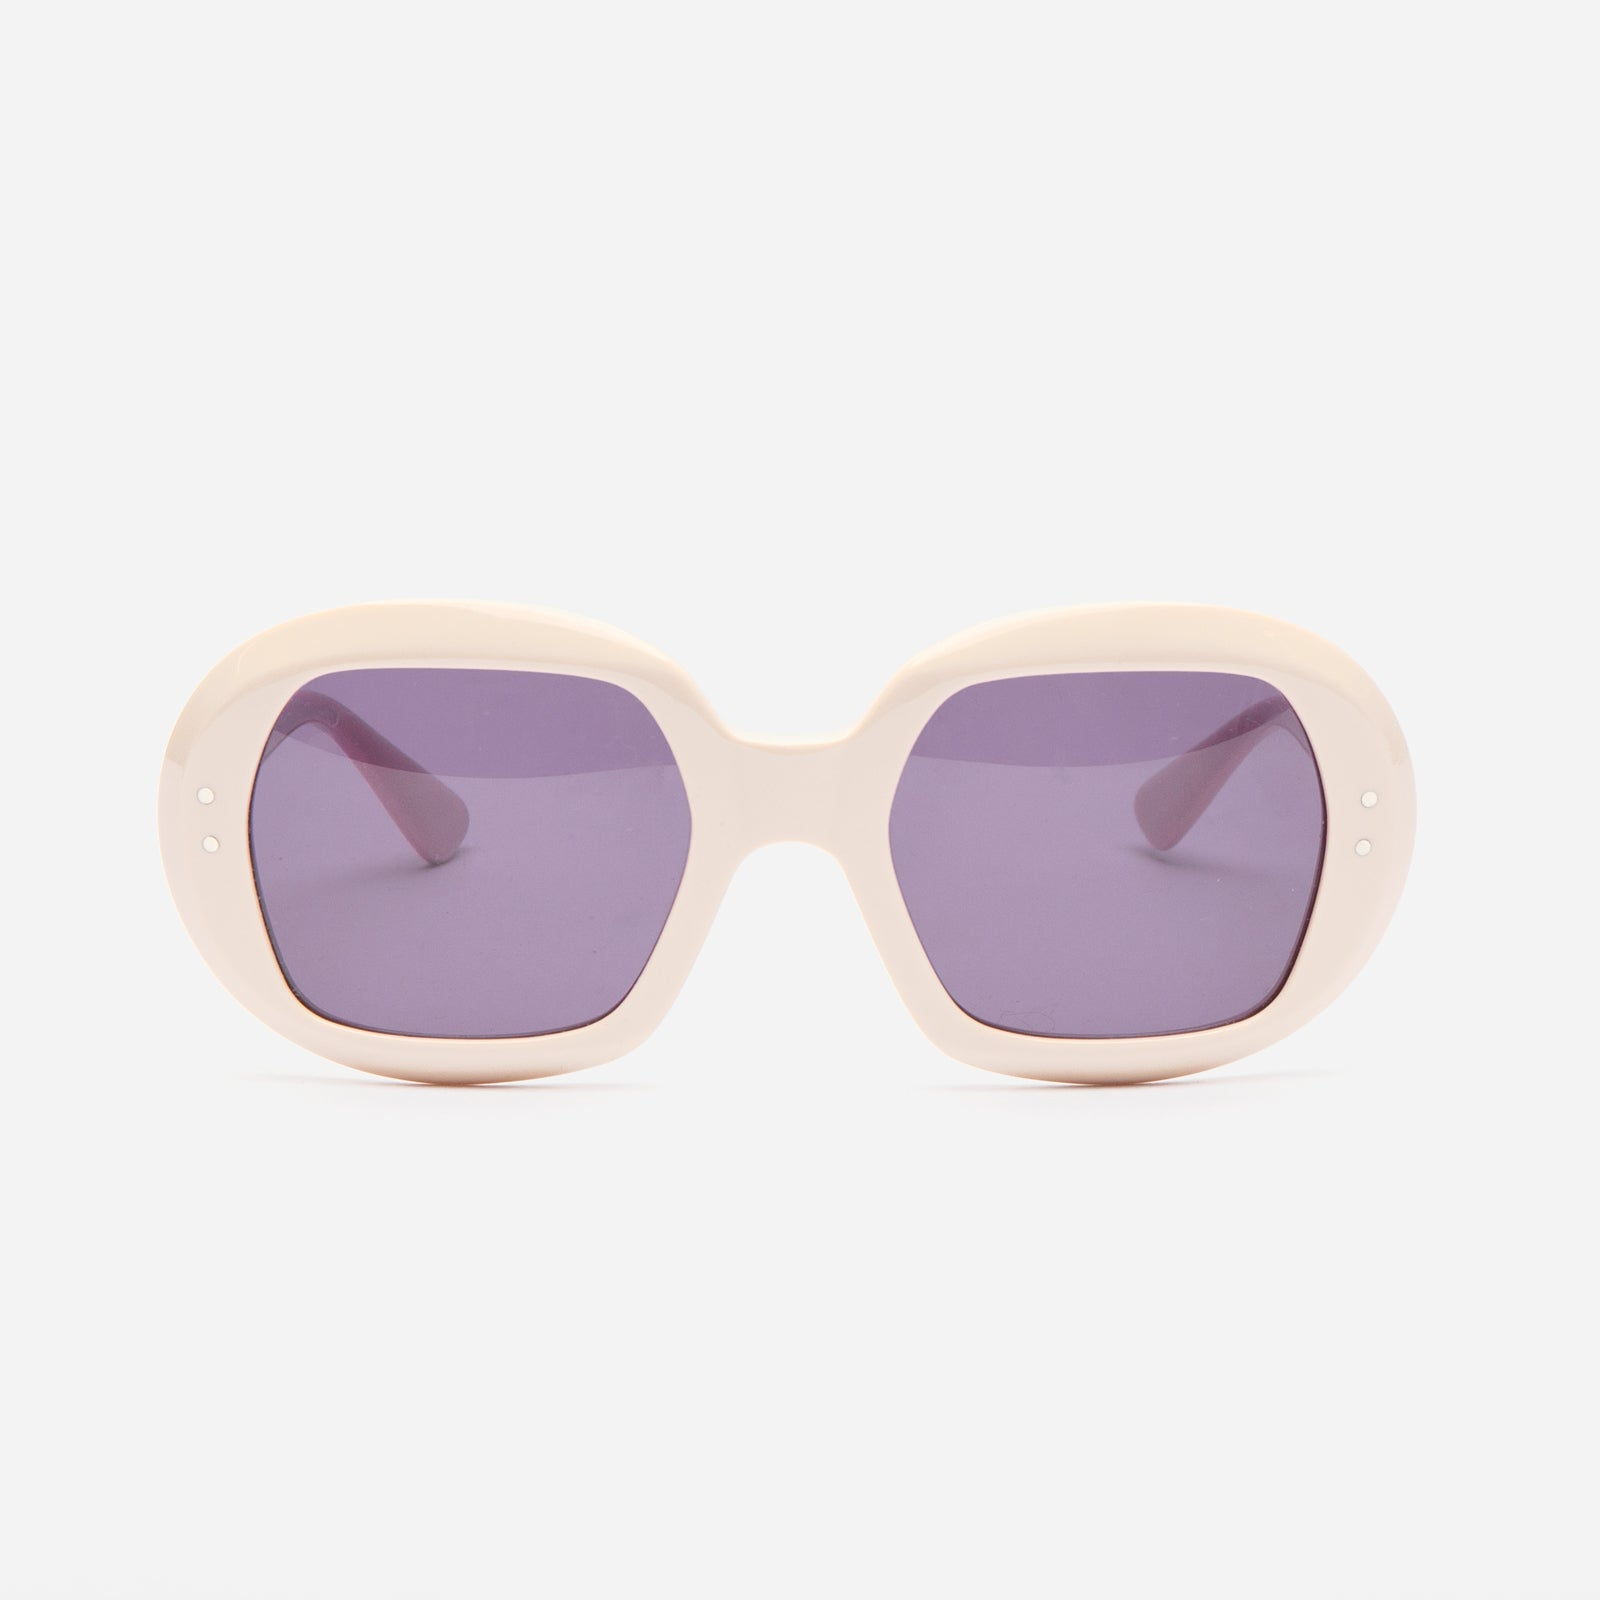 Selima Optique x FV Babs Sunglasses Ivory